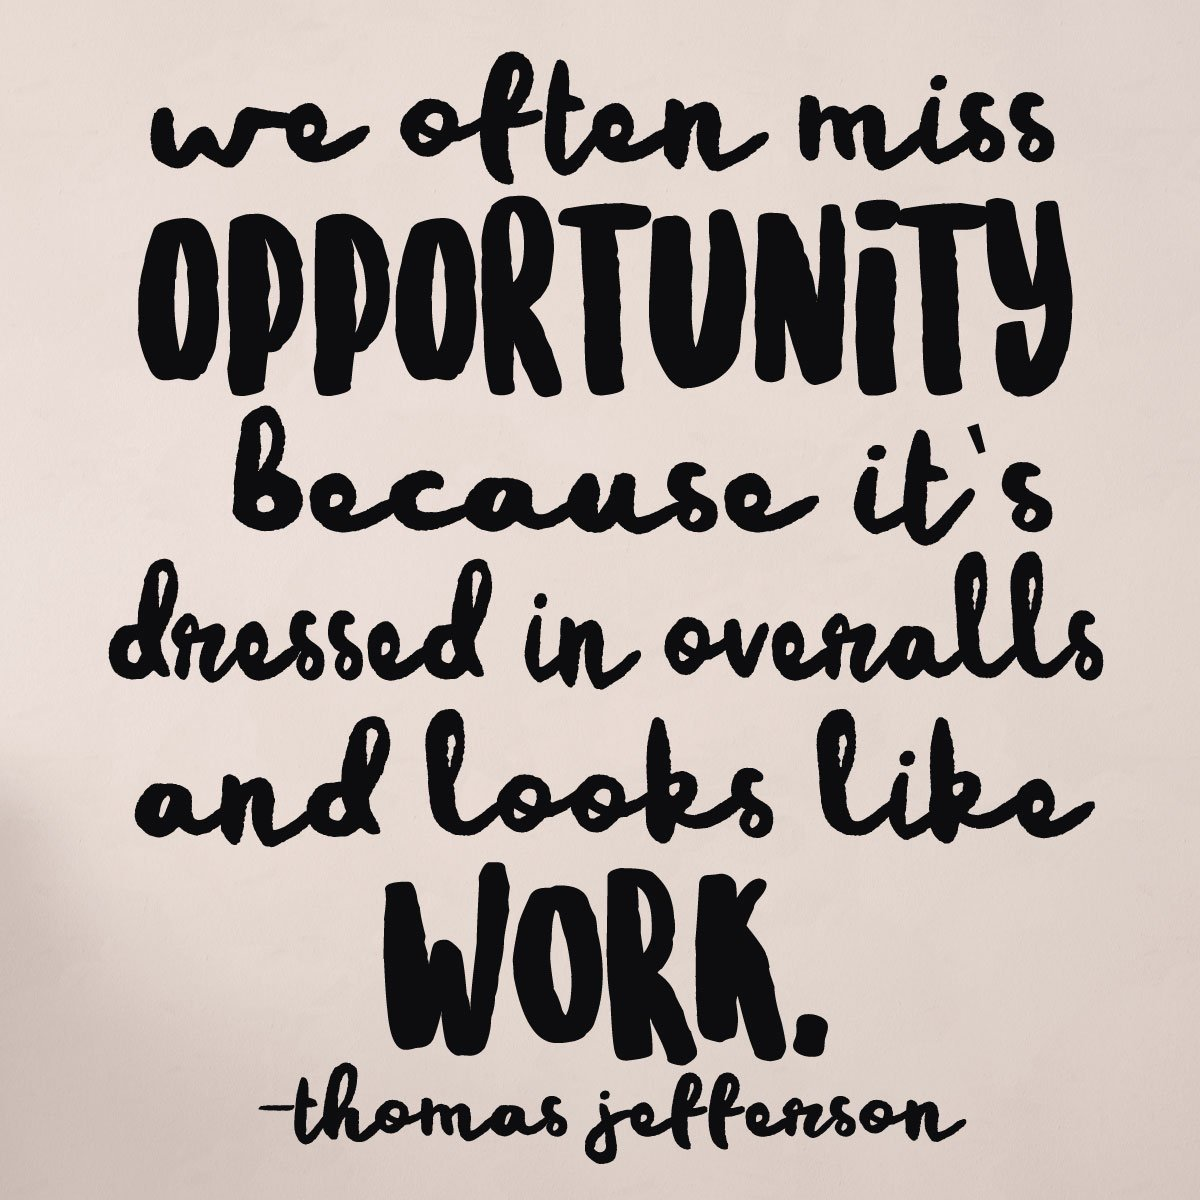 Thomas Jefferson - Wall Quote- We Often Miss Opportunities Because Its Dressed In Overalls And Looks Like Work Vinyl Wall Decal for Playroom